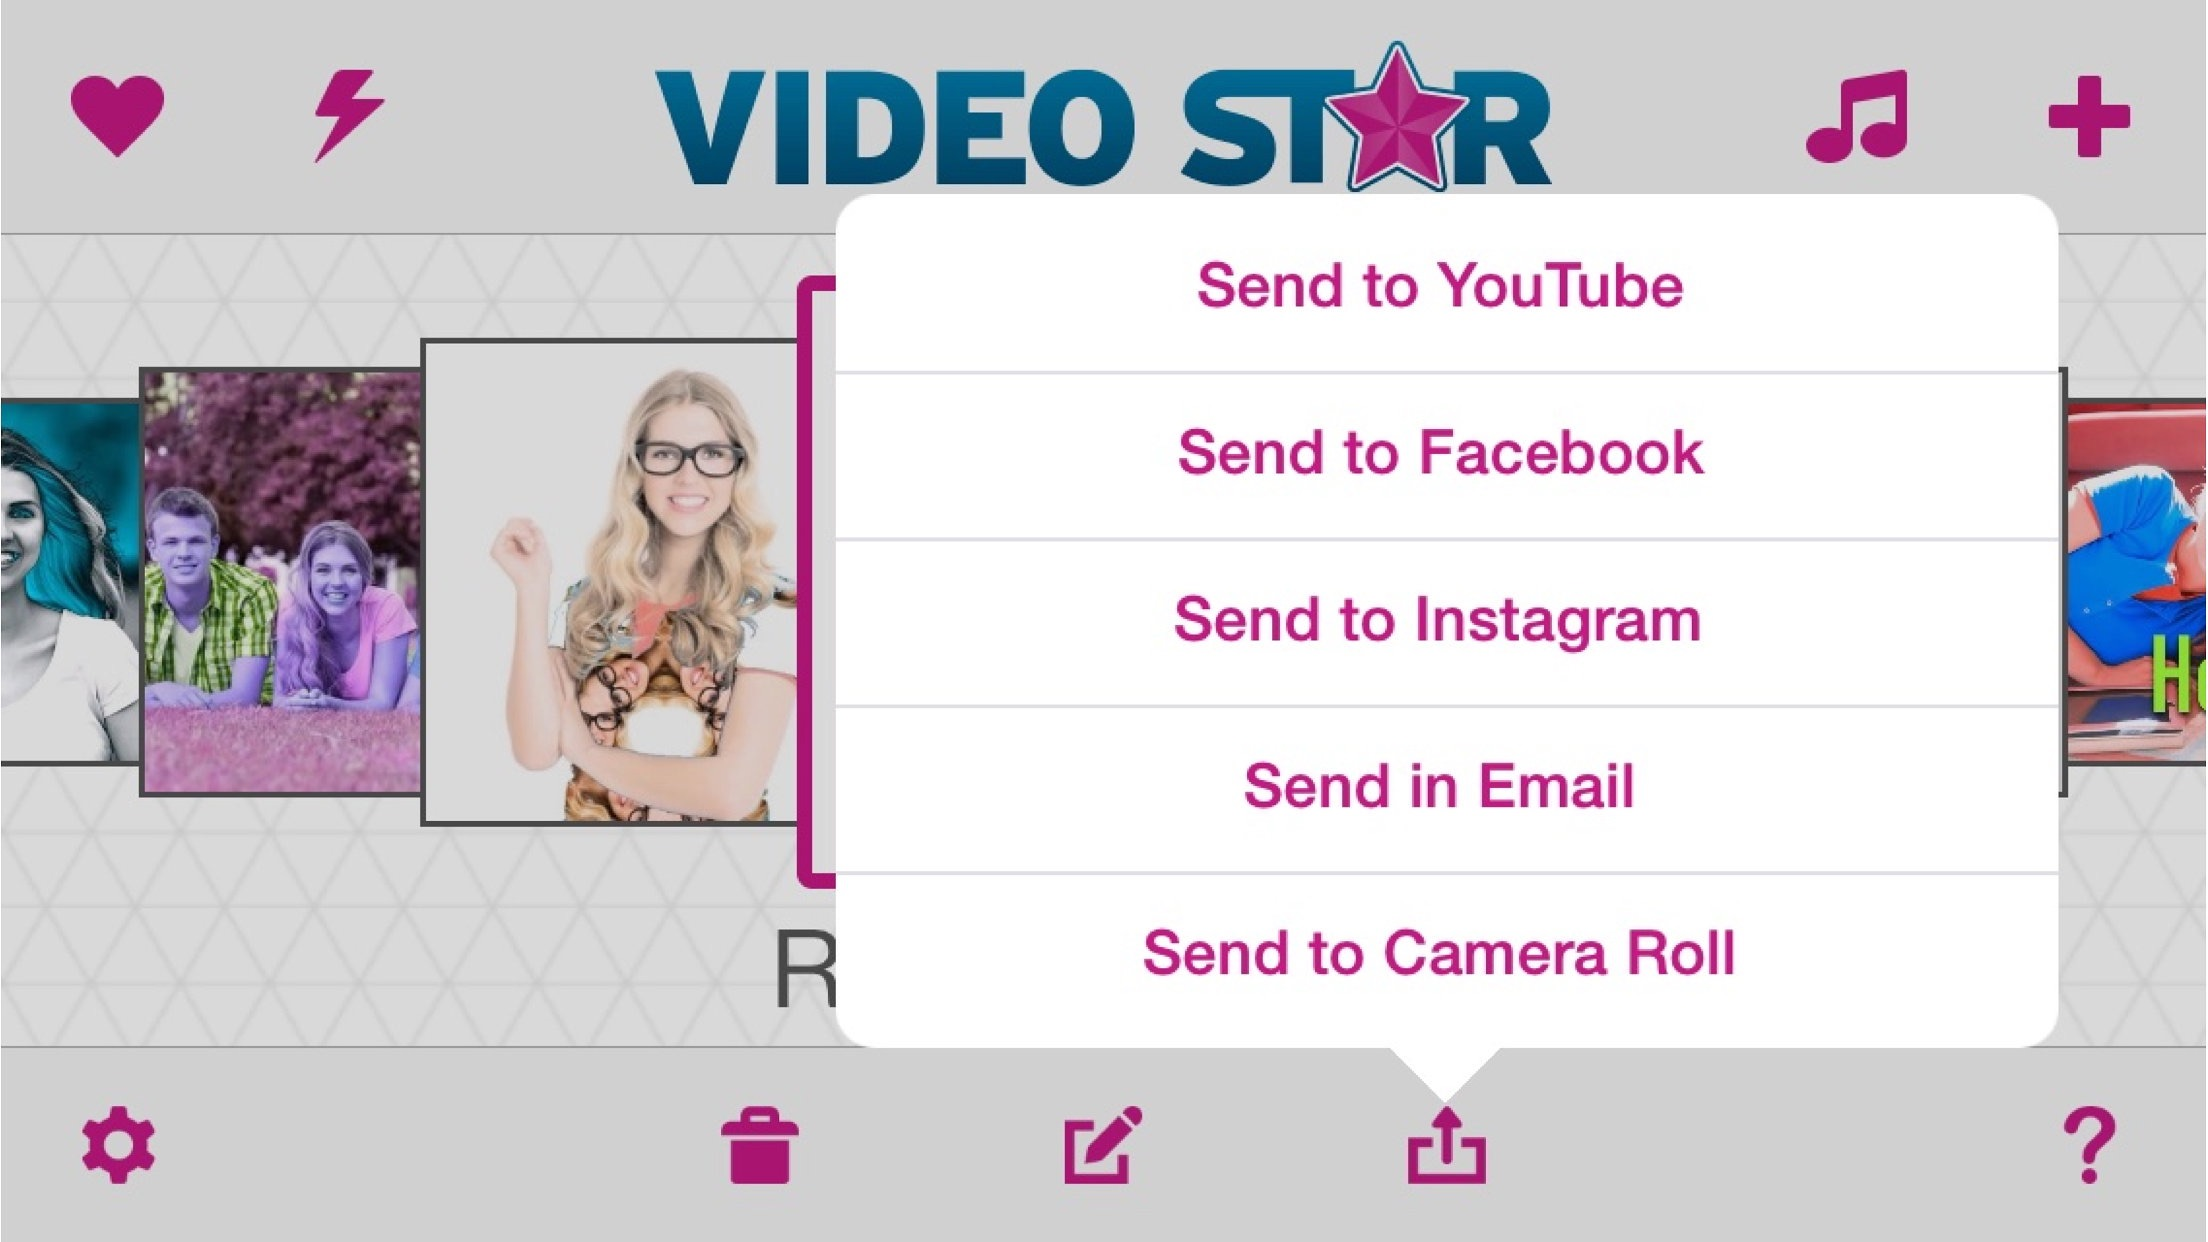 Video Star Screenshot